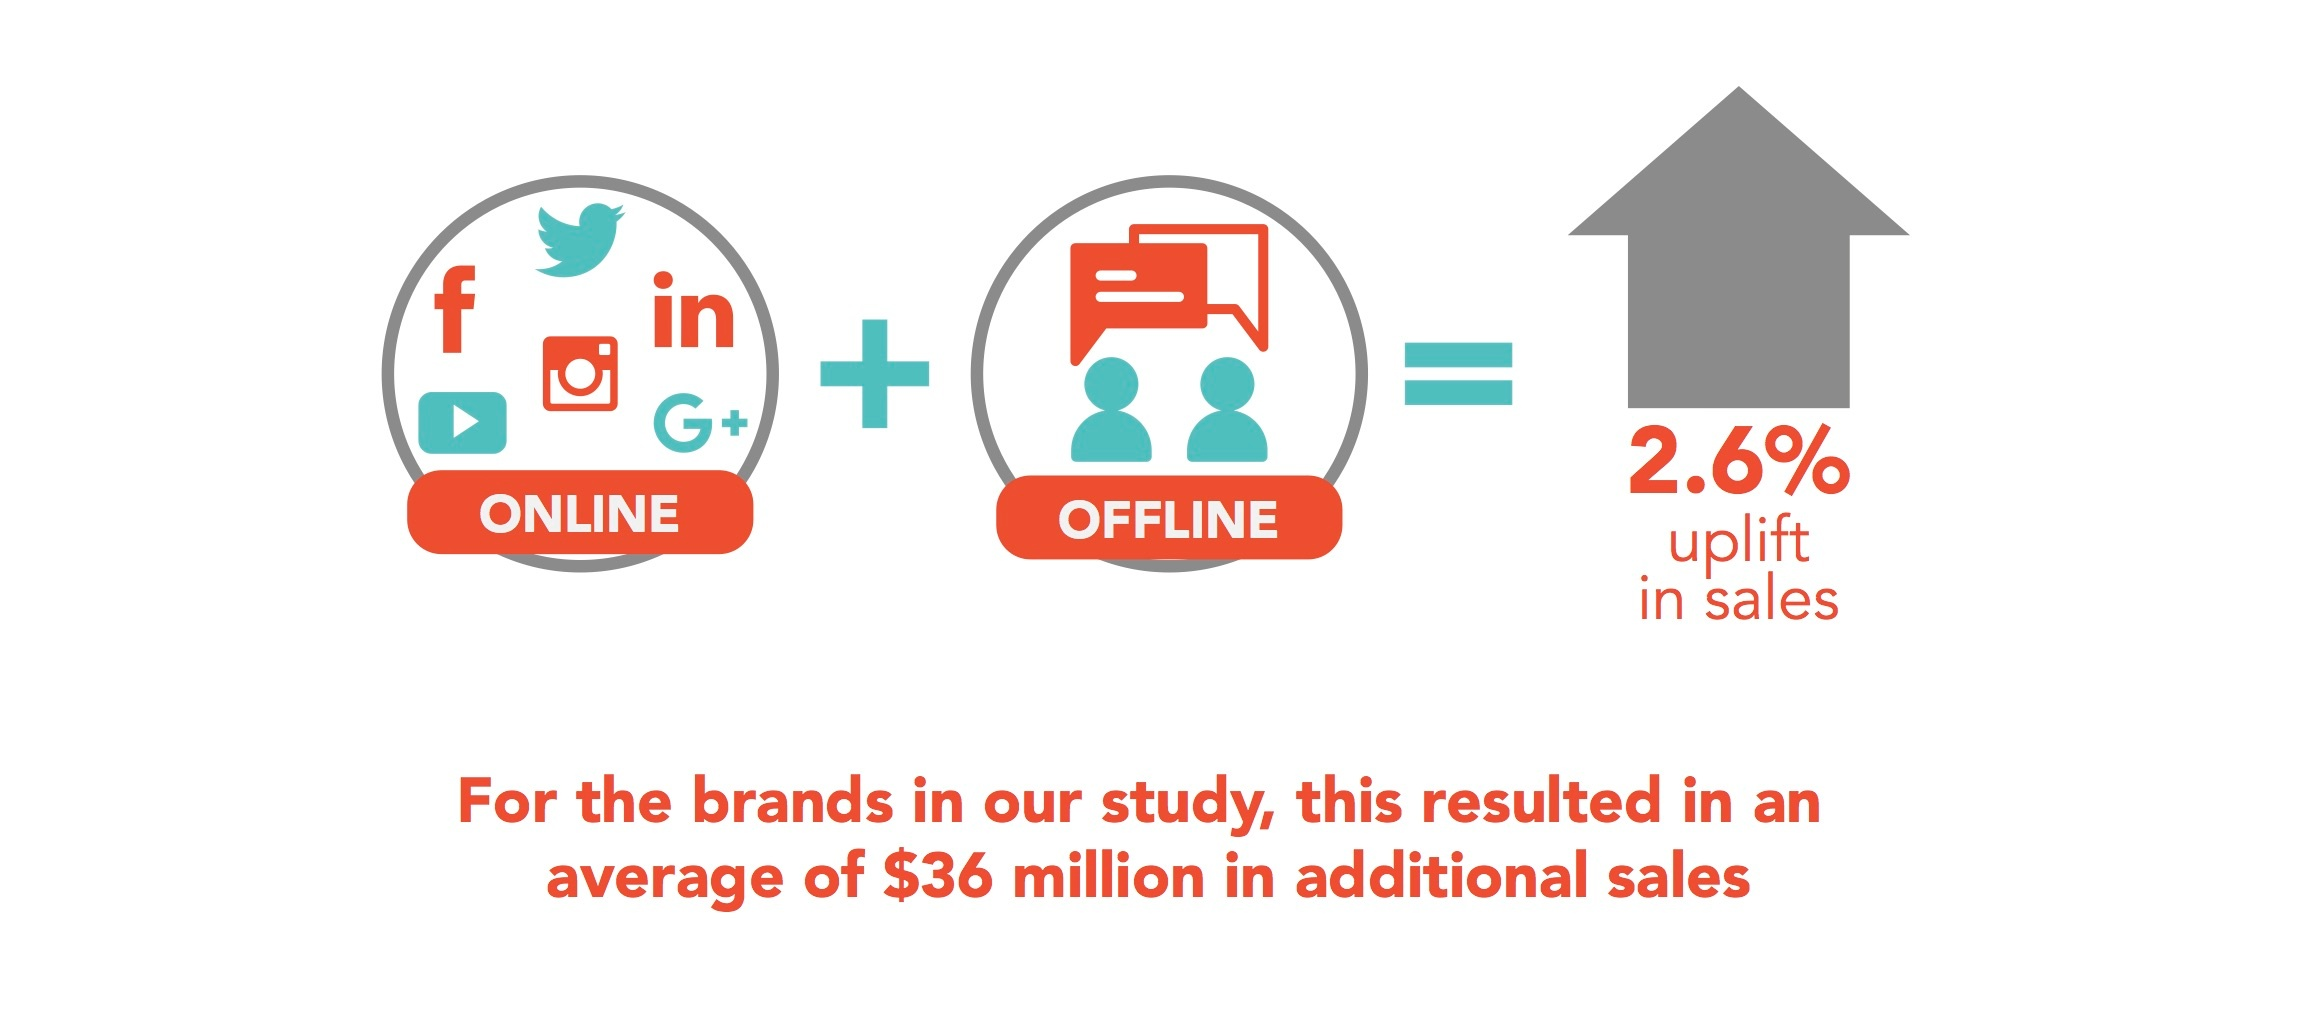 For the brands in our study, this resulted in an average of $36 million in additional sales